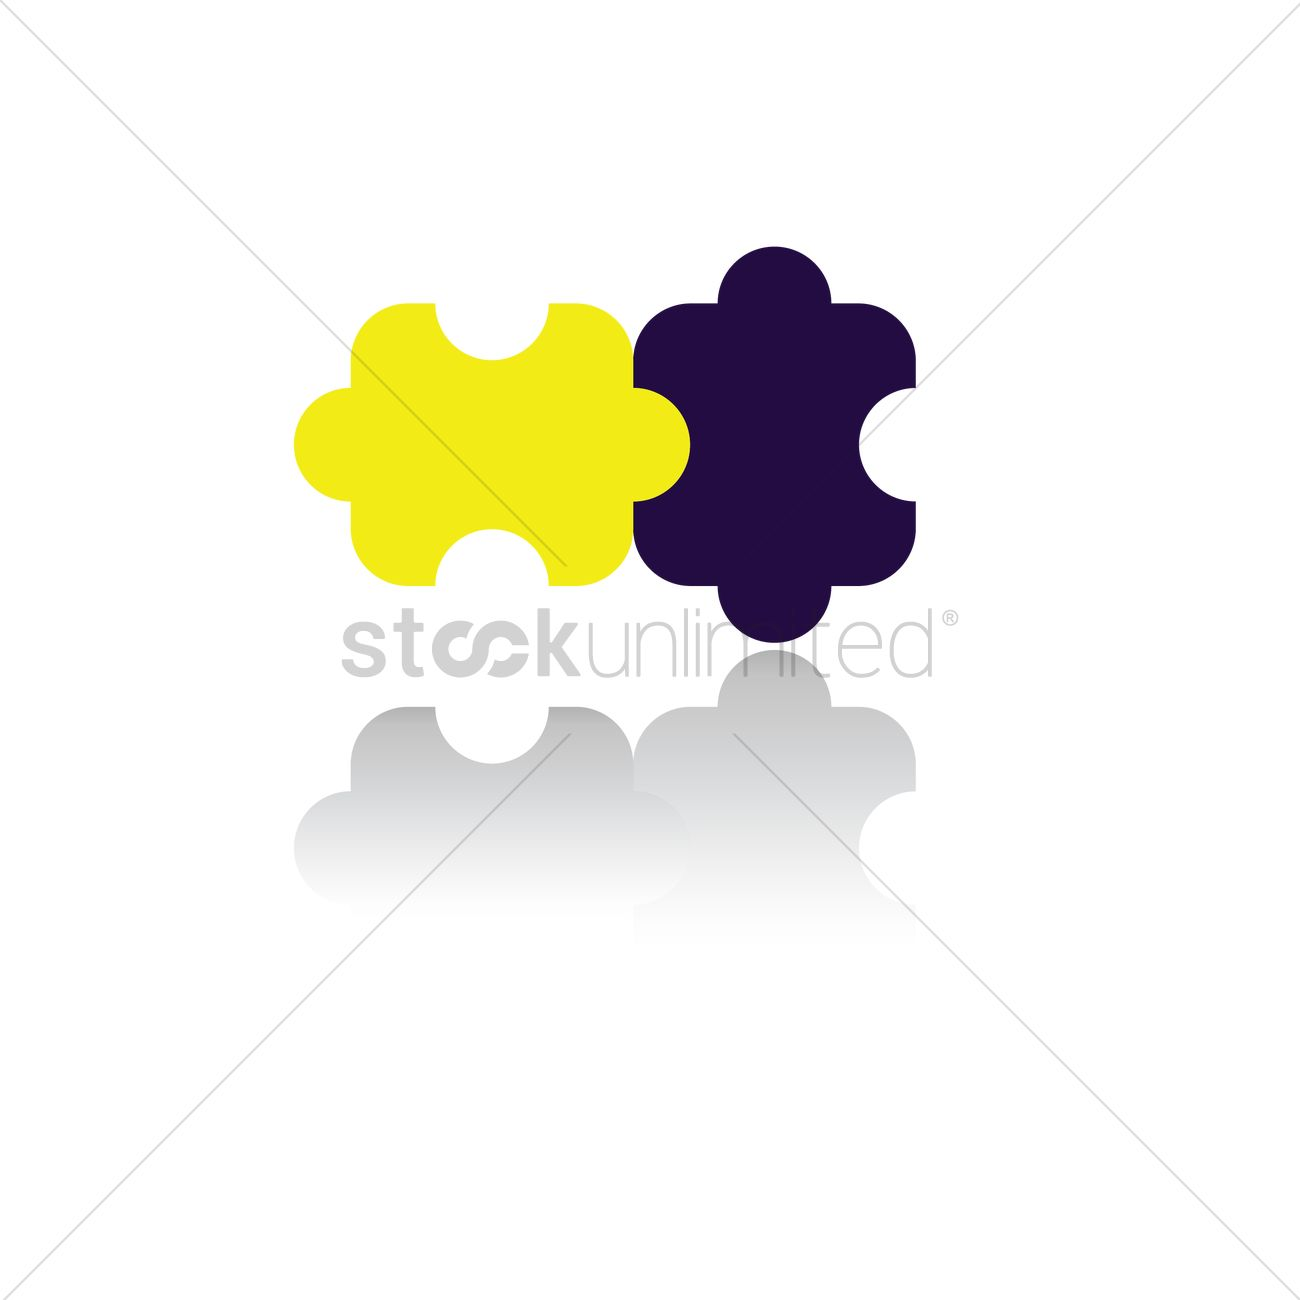 Puzzle pieces Vector Image - 1514972 | StockUnlimited